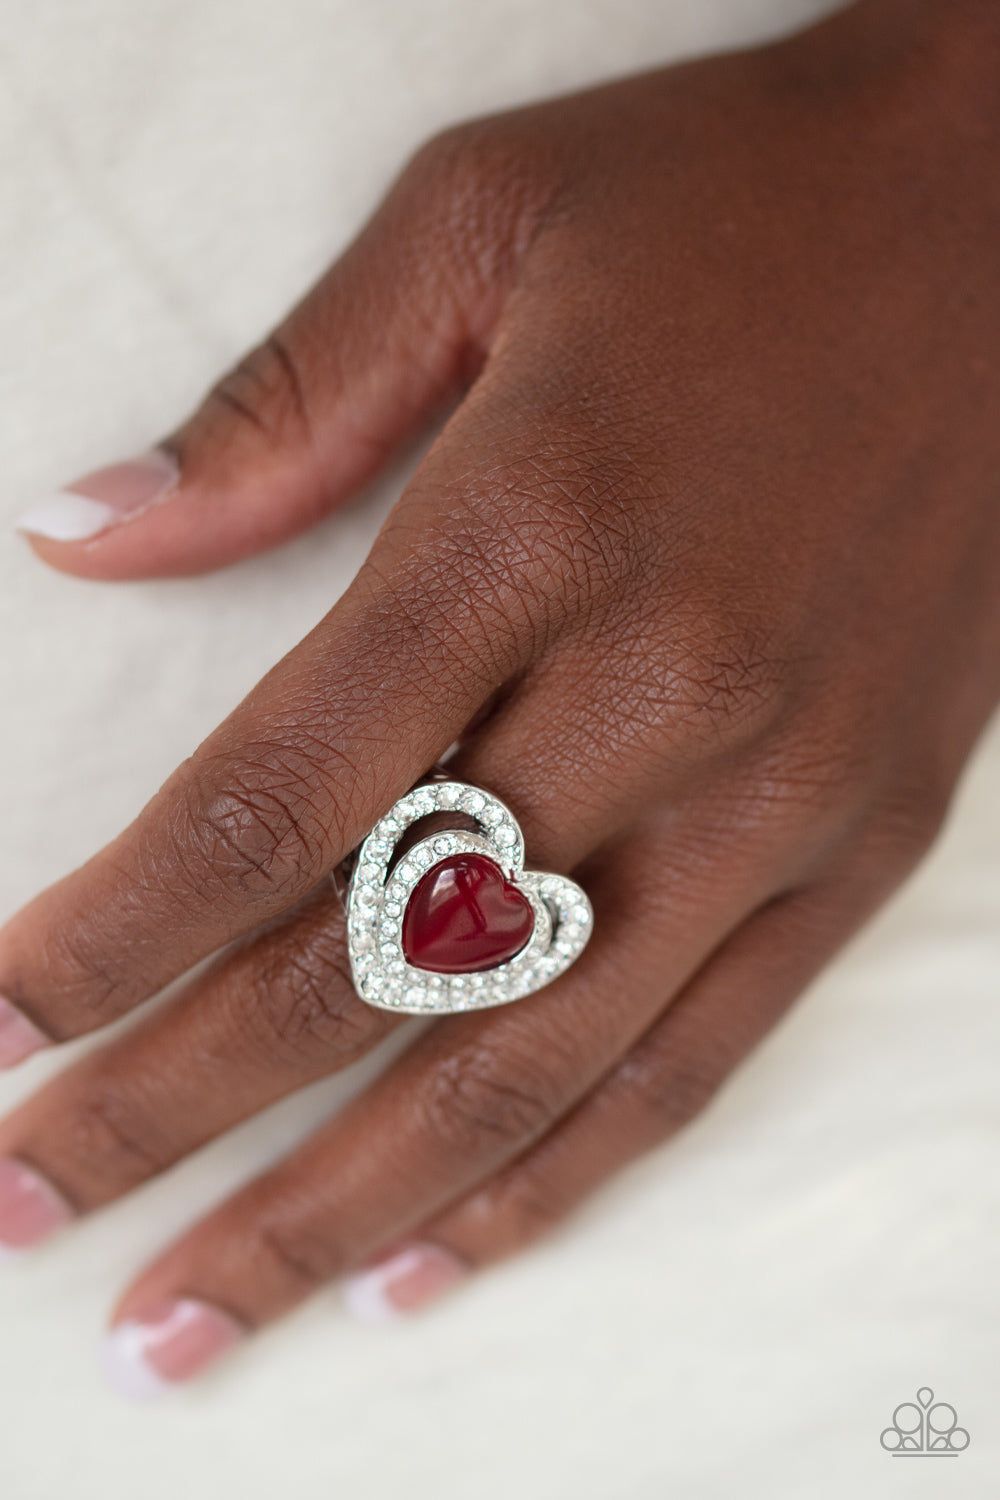 Encrusted in glittery red rhinestones, silver ribbons crisscross across the finger, creating a dainty band. A glistening silver heart adorns the center of the band for a romantic finish. Features a dainty stretchy band for a flexible fit.  Sold as one individual ring.  Always nickel and lead free.